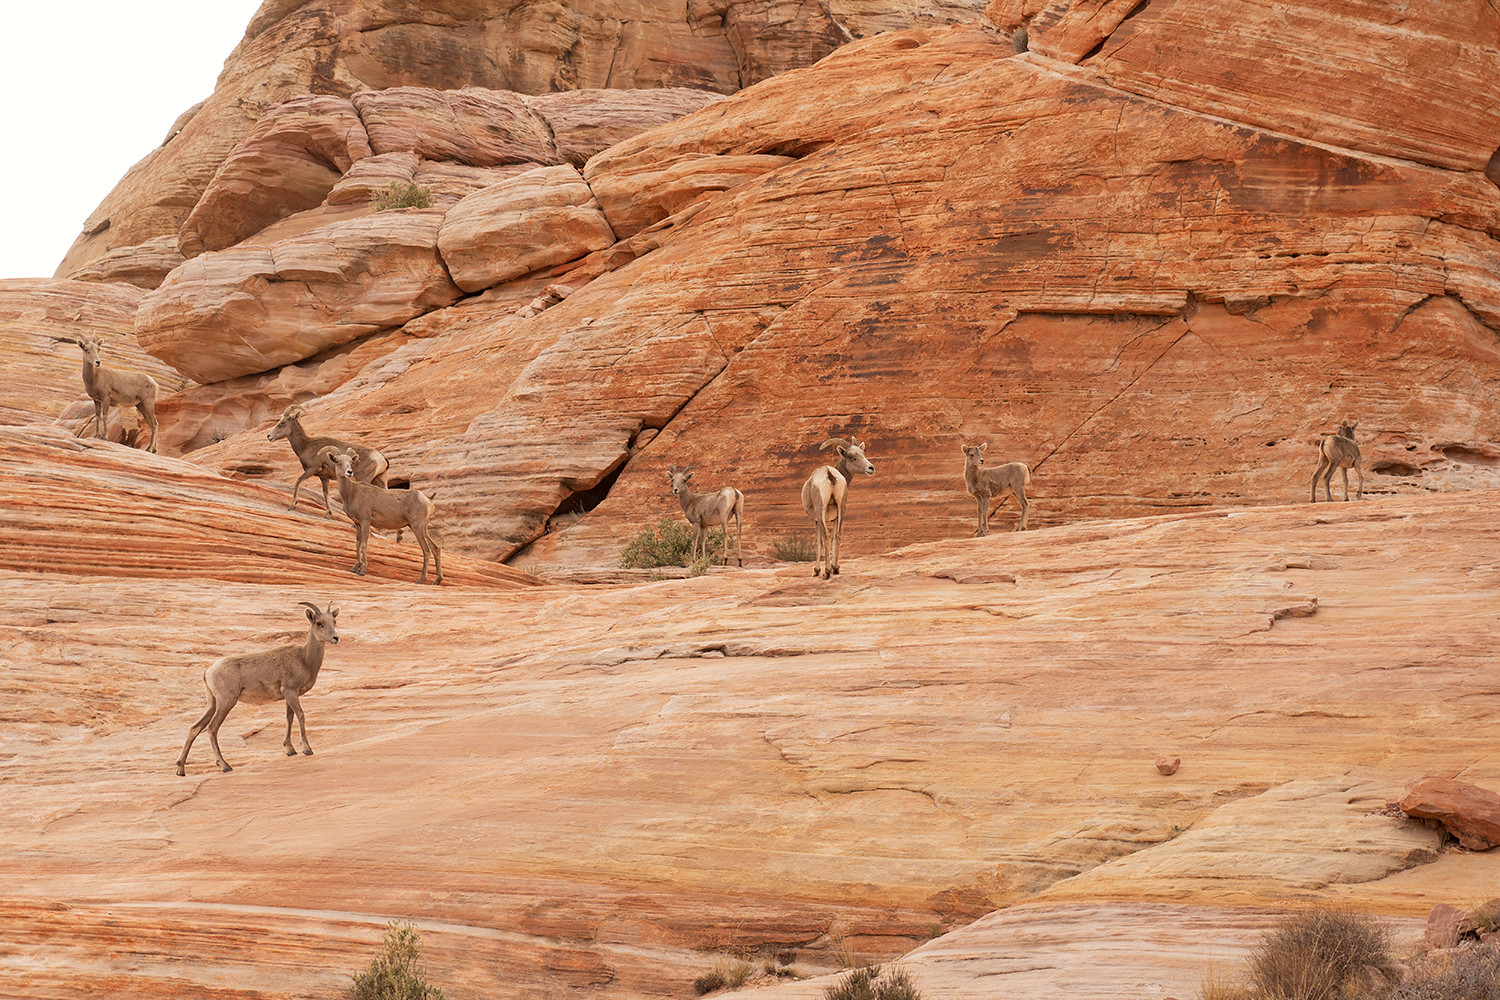 15valleyoffire-vegas-nevada-bighornsheep-wildanimal-travel-photography